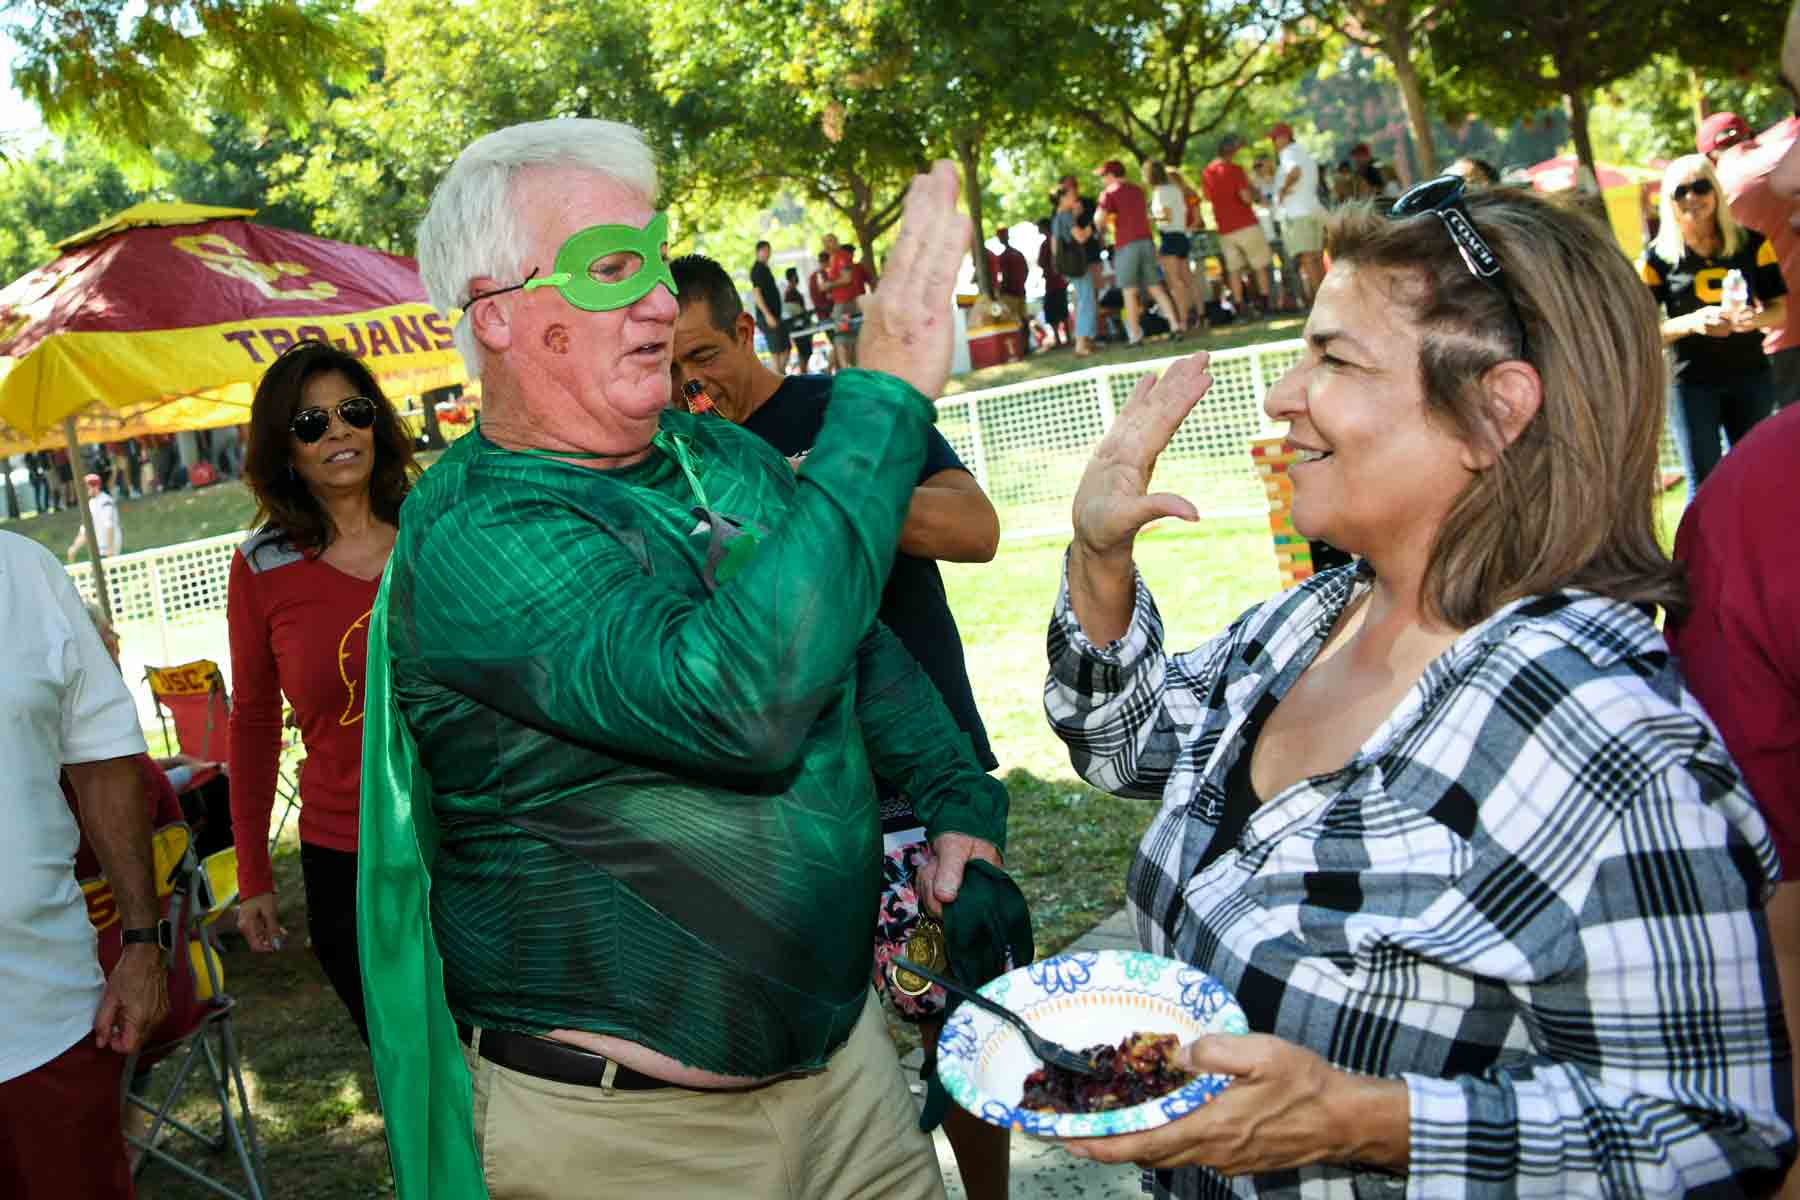 Recycle Man high-fiving a USC tailgater